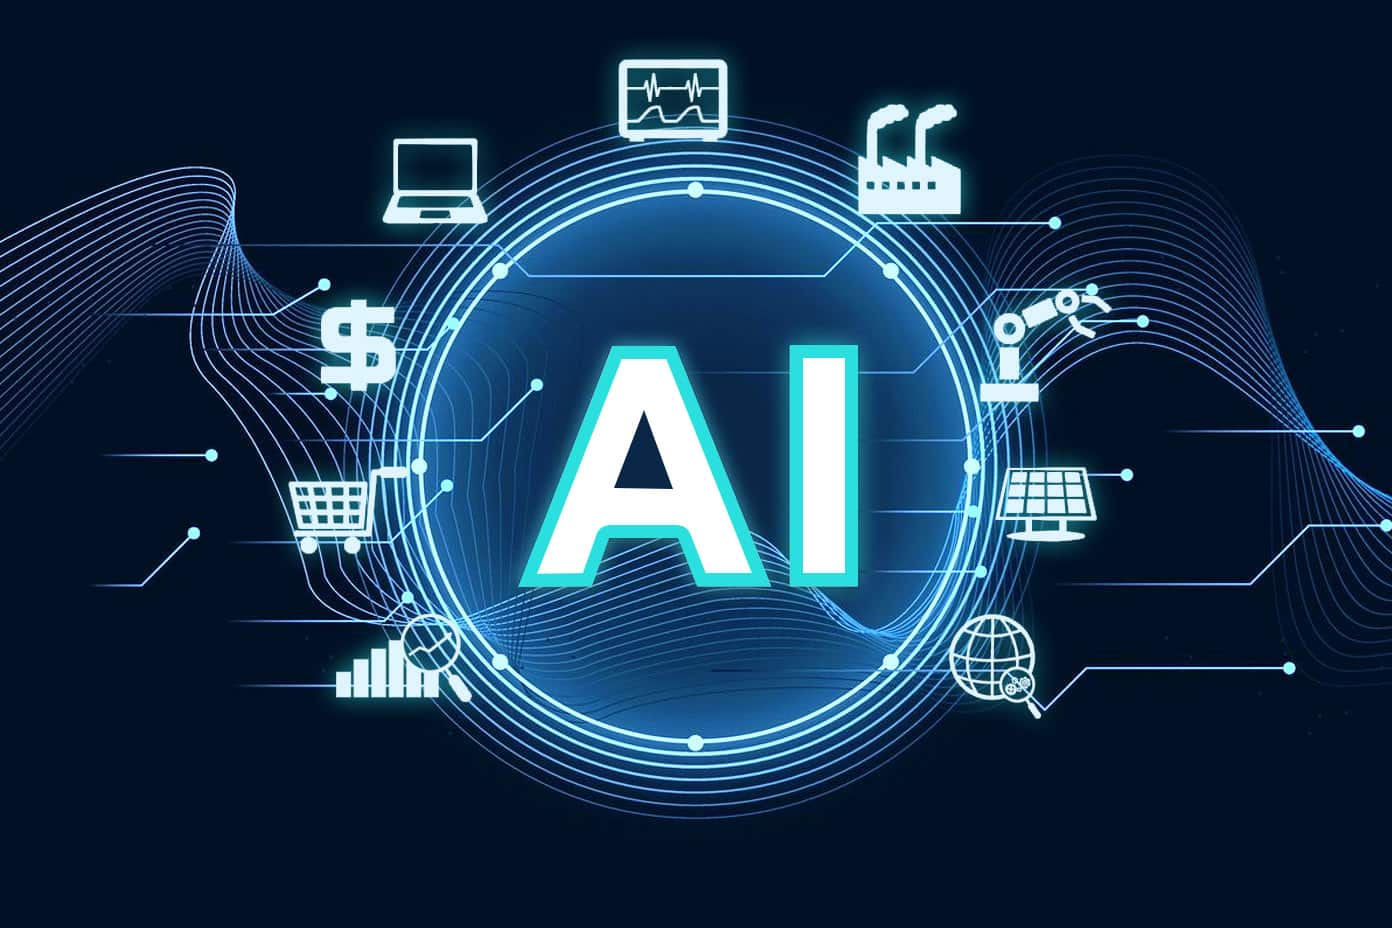 Artificial Intelligence Trends 2021: What Positive Changes to Expect?